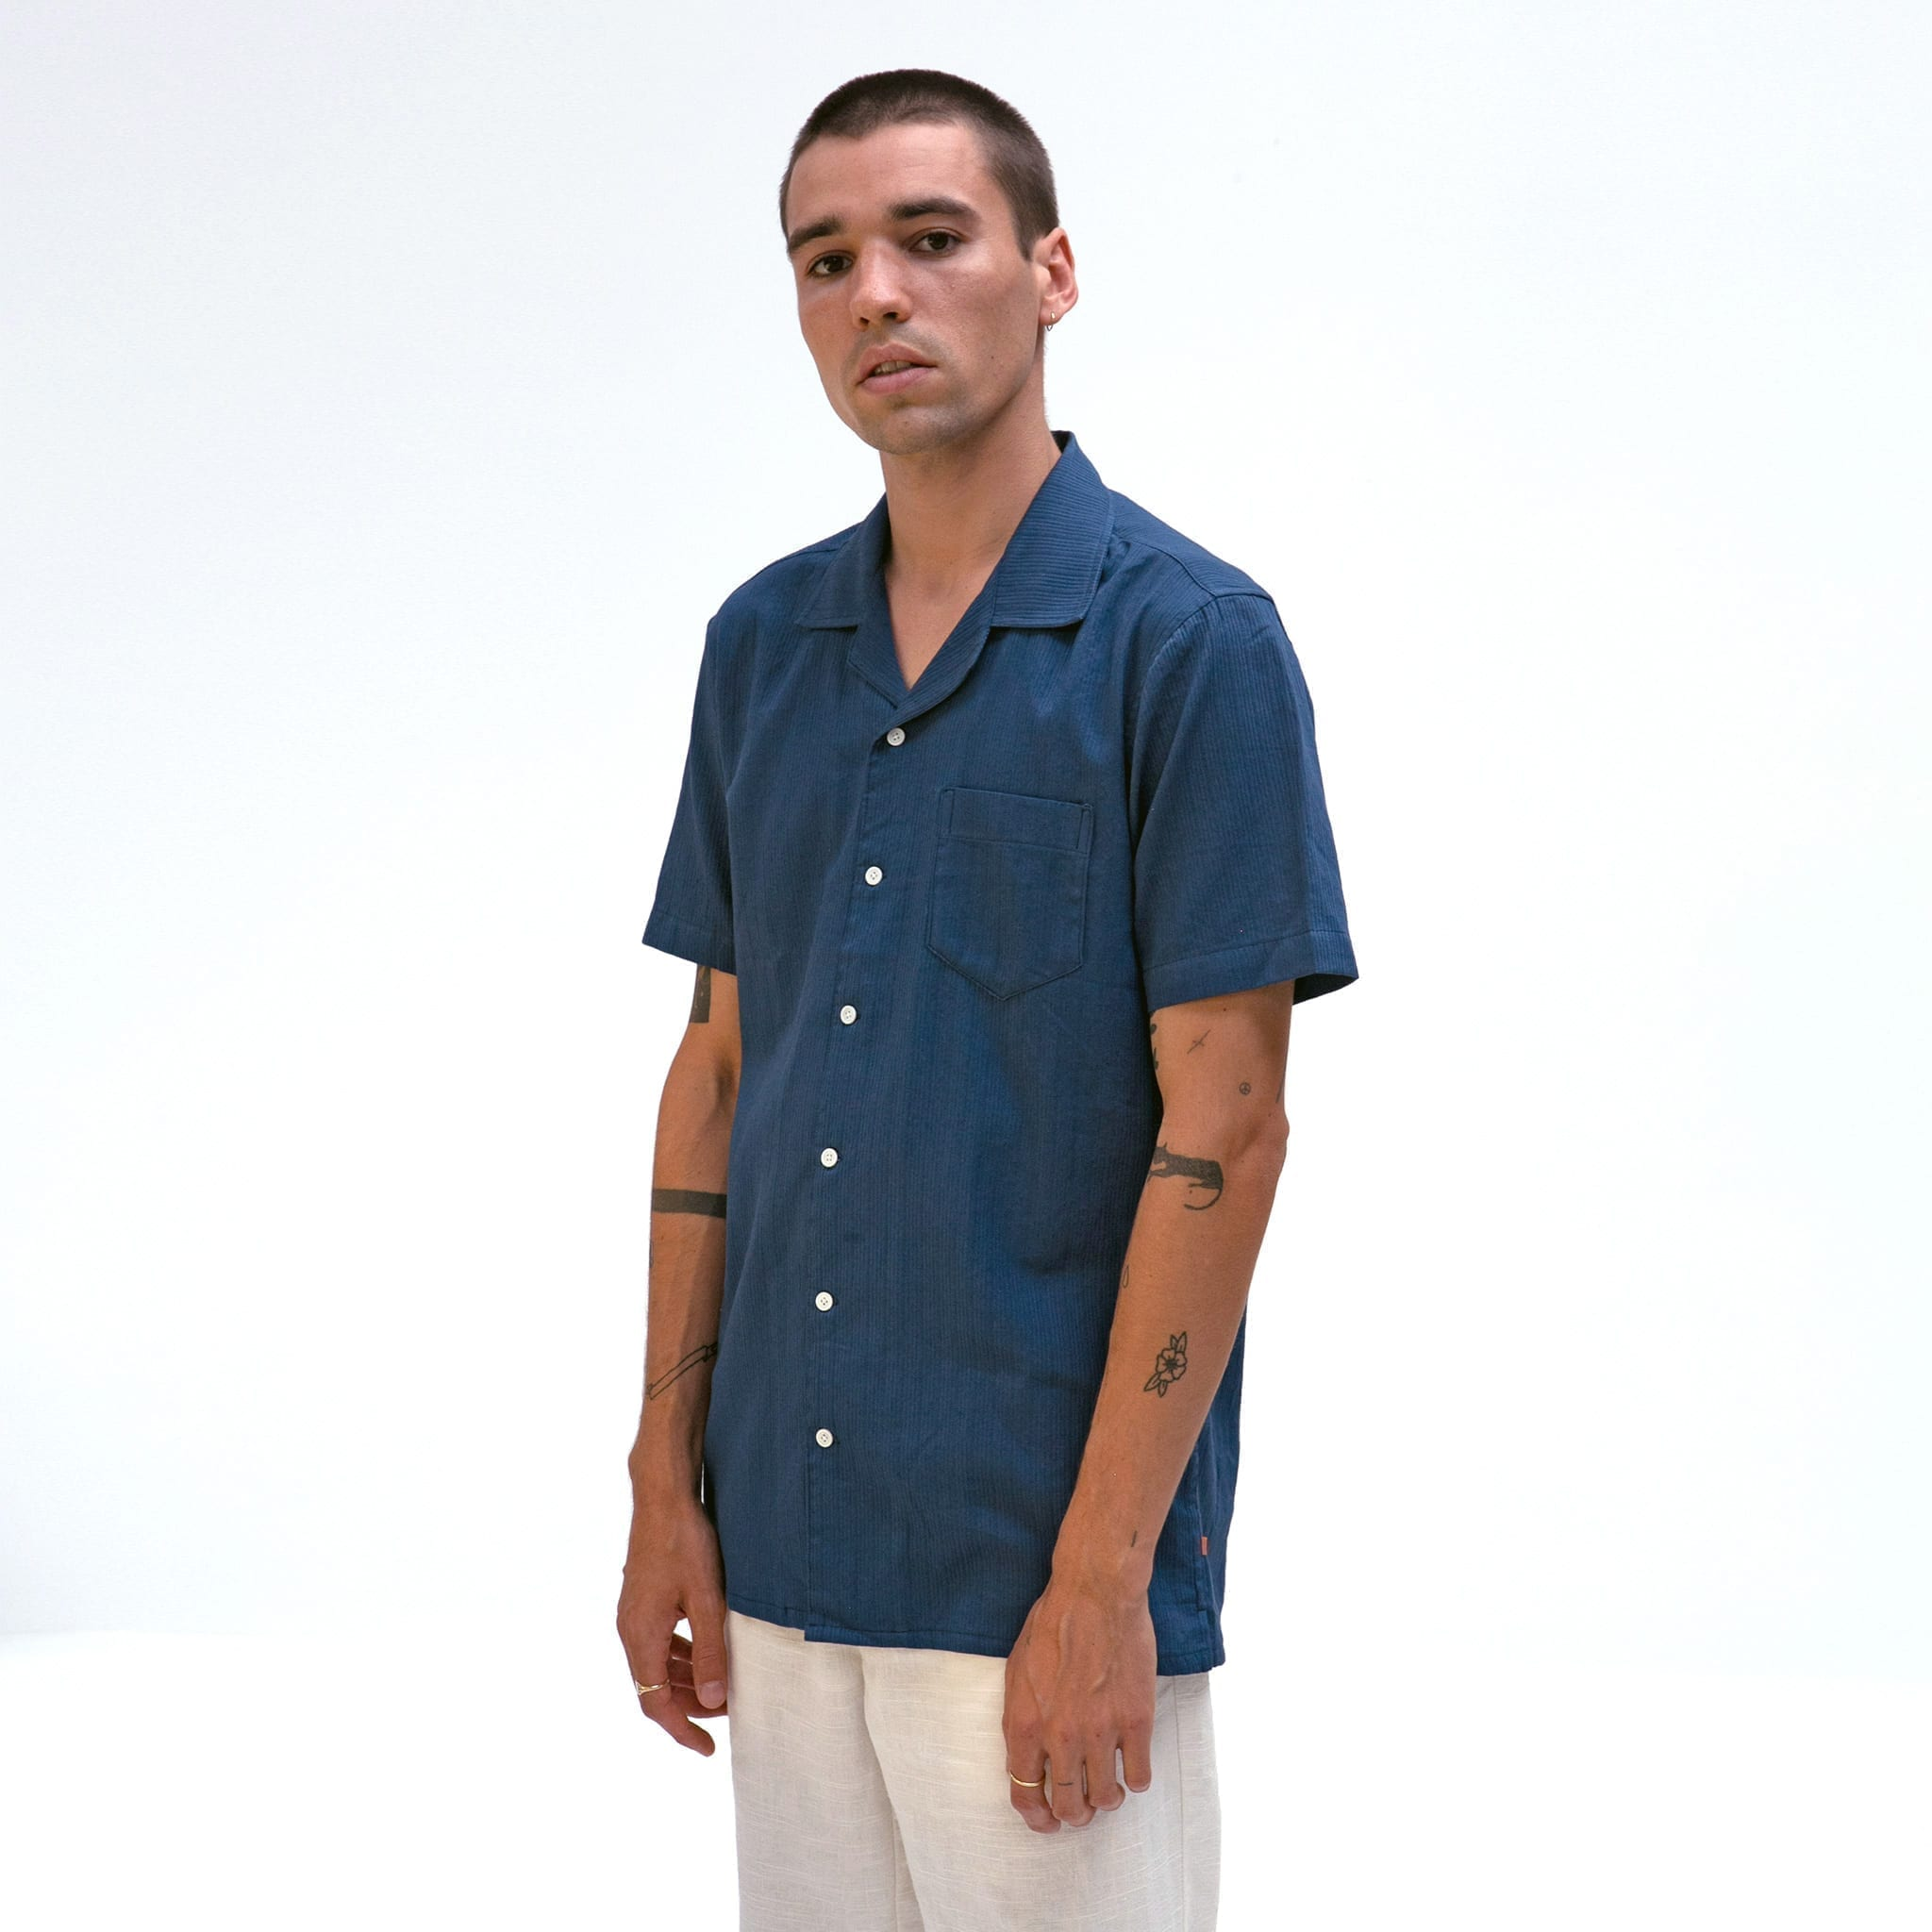 Stachio S/S Shirt